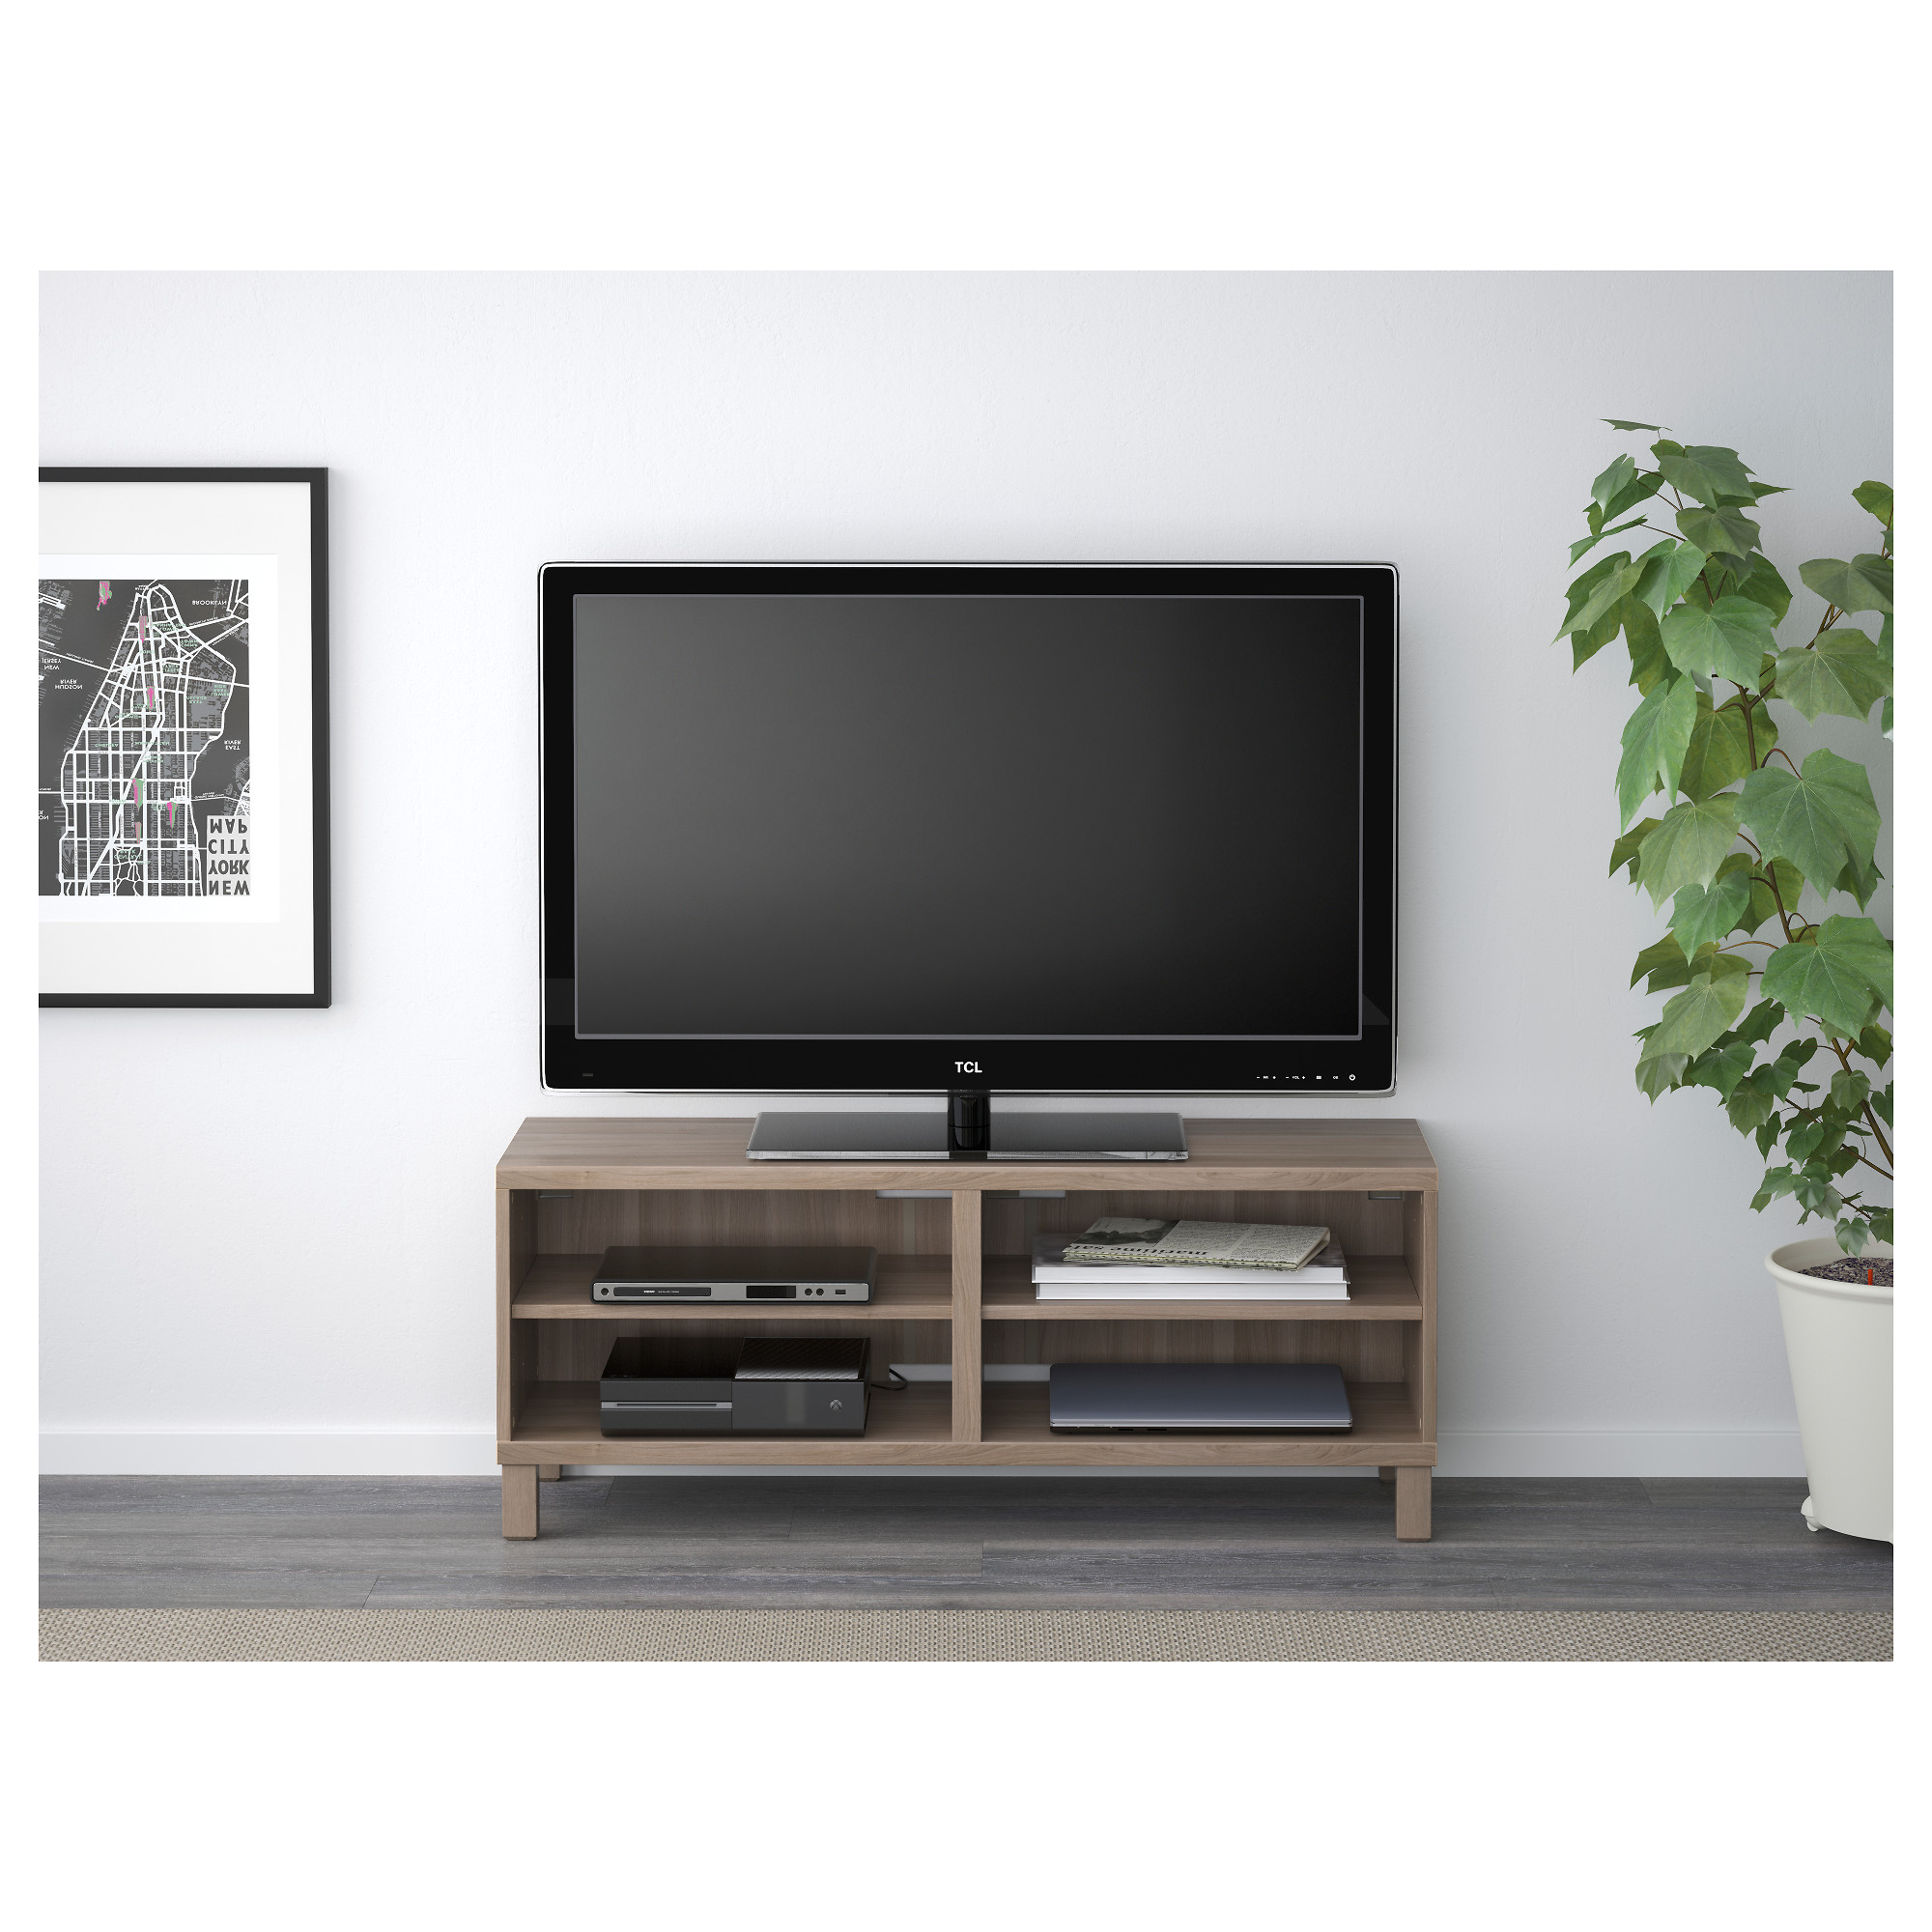 Mesas De Tv Ikea Perfect Mesa Tv Ikea With Mesas De Tv Ikea  # Meuble Cache Tv Ikea